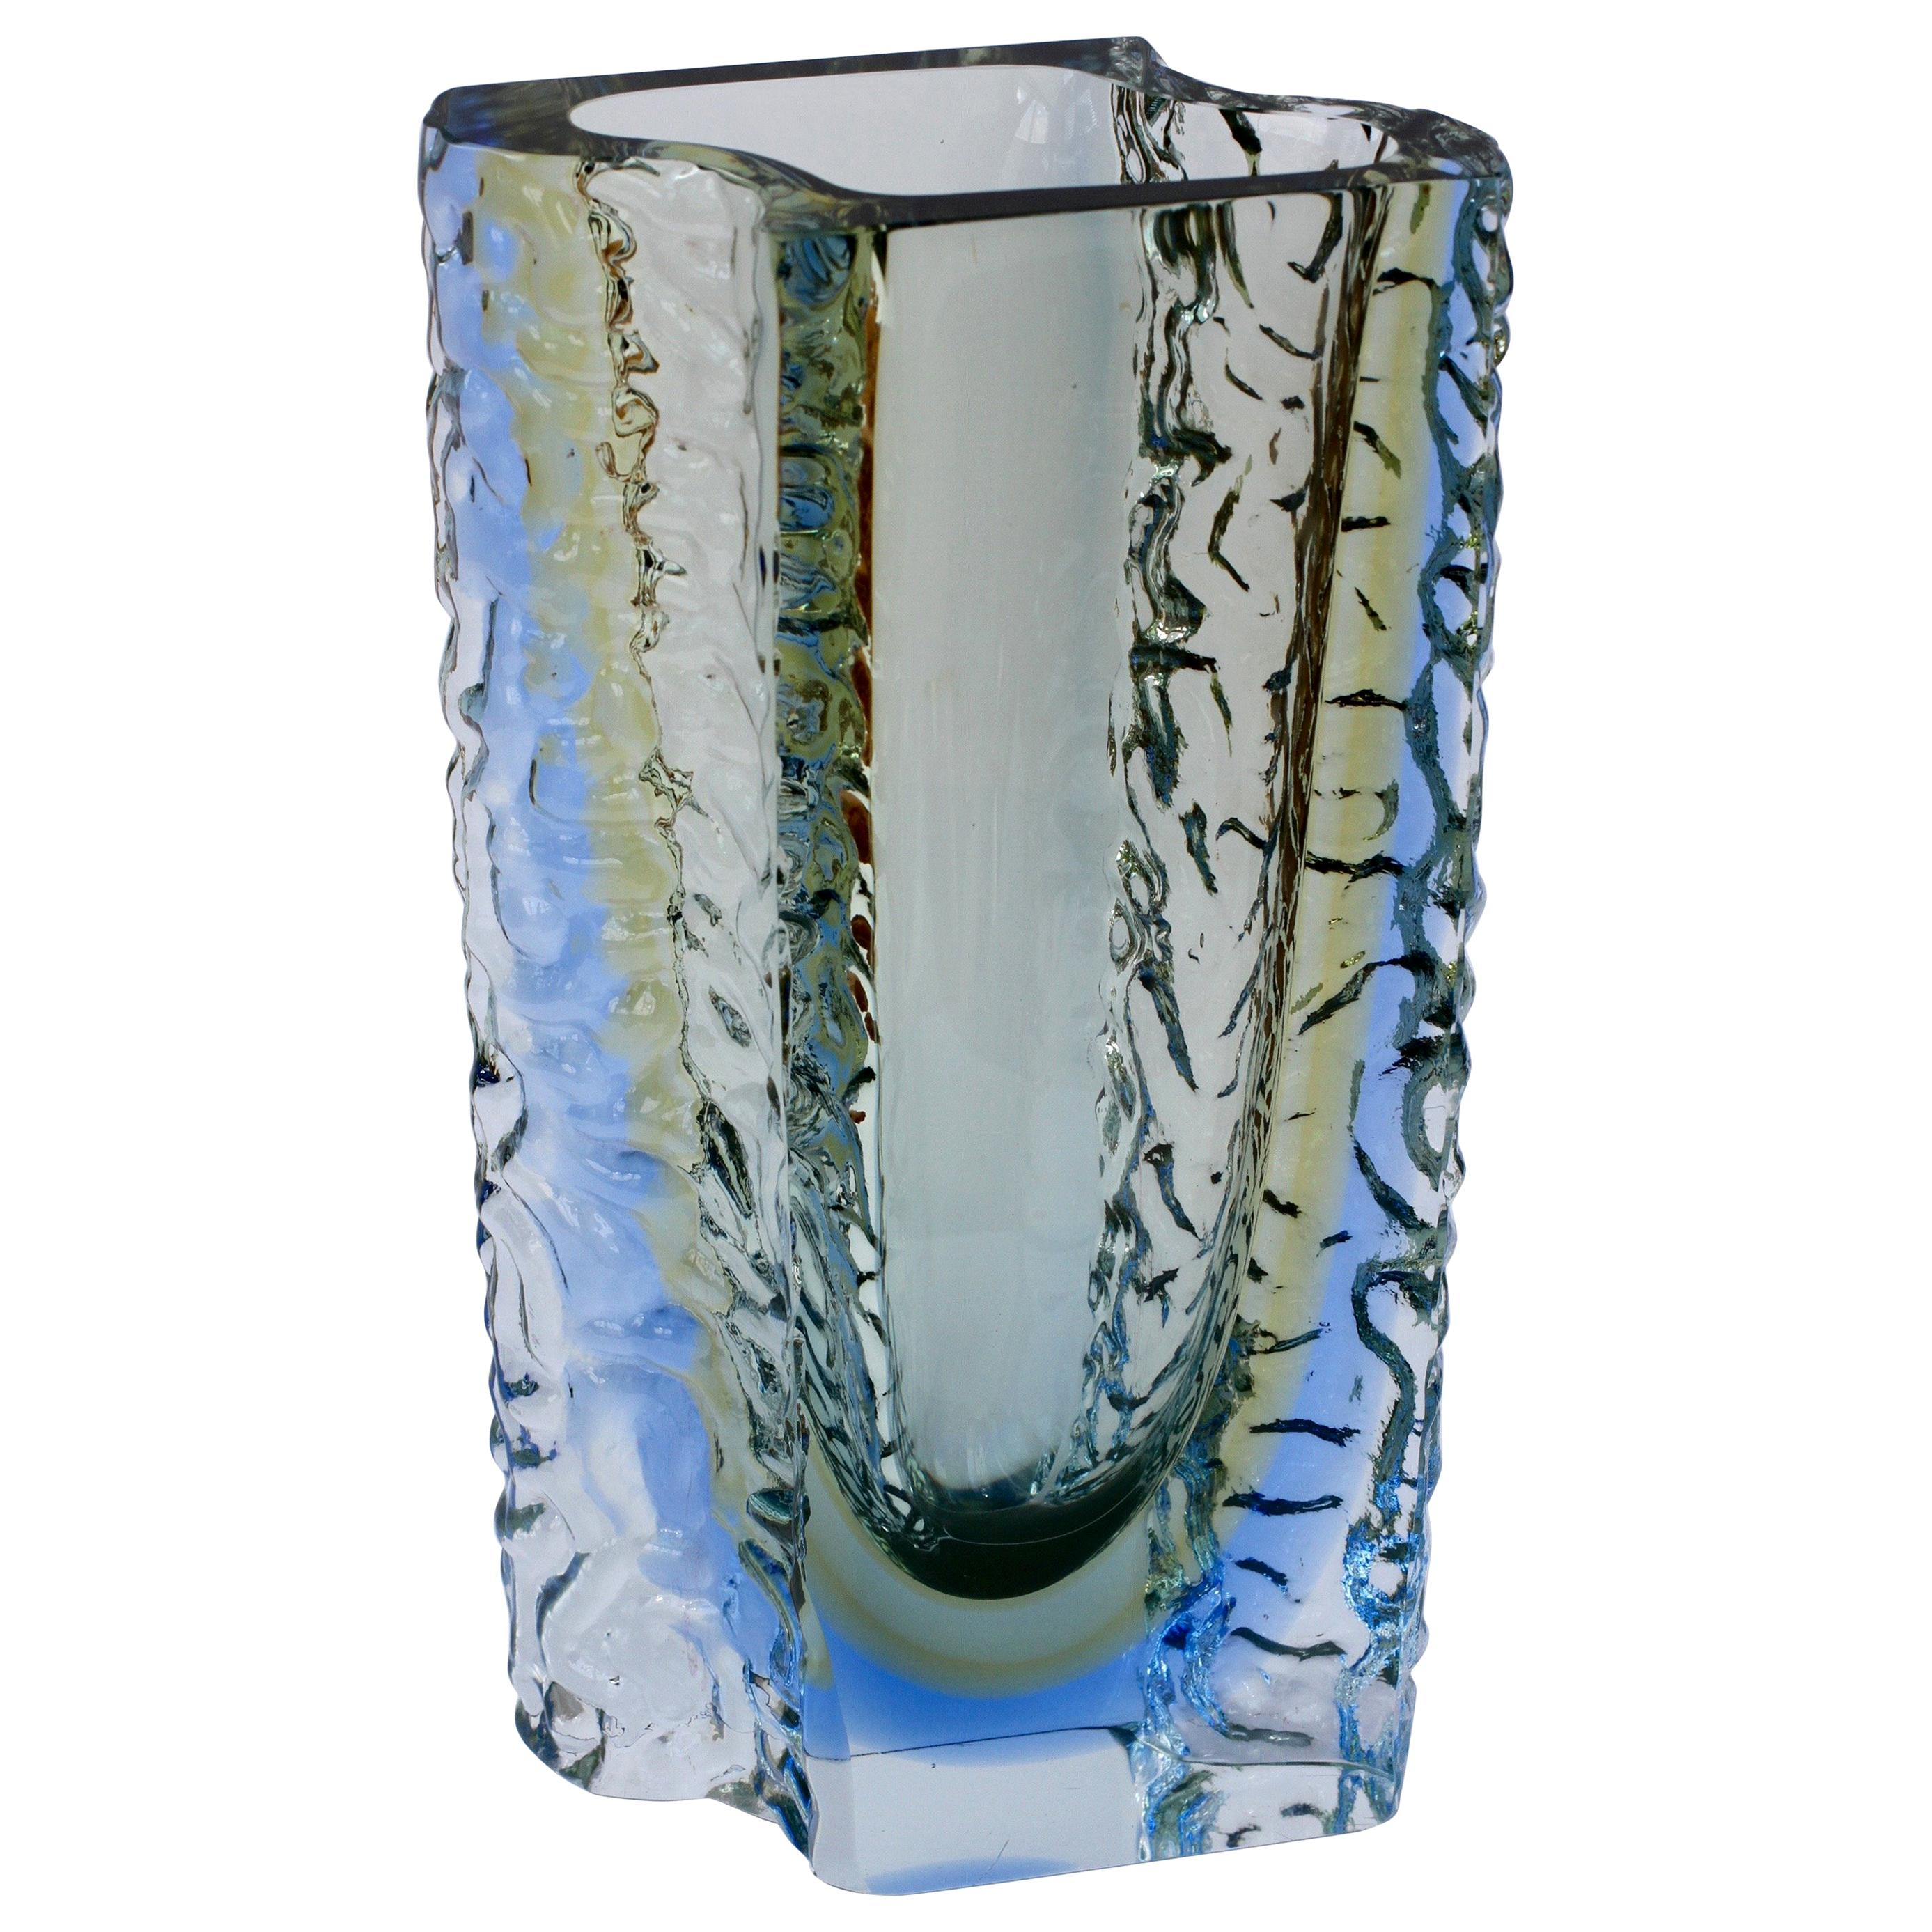 Large Textured Murano 'Sommerso' Blue Ice Glass Vase Attributed to Mandruzzato